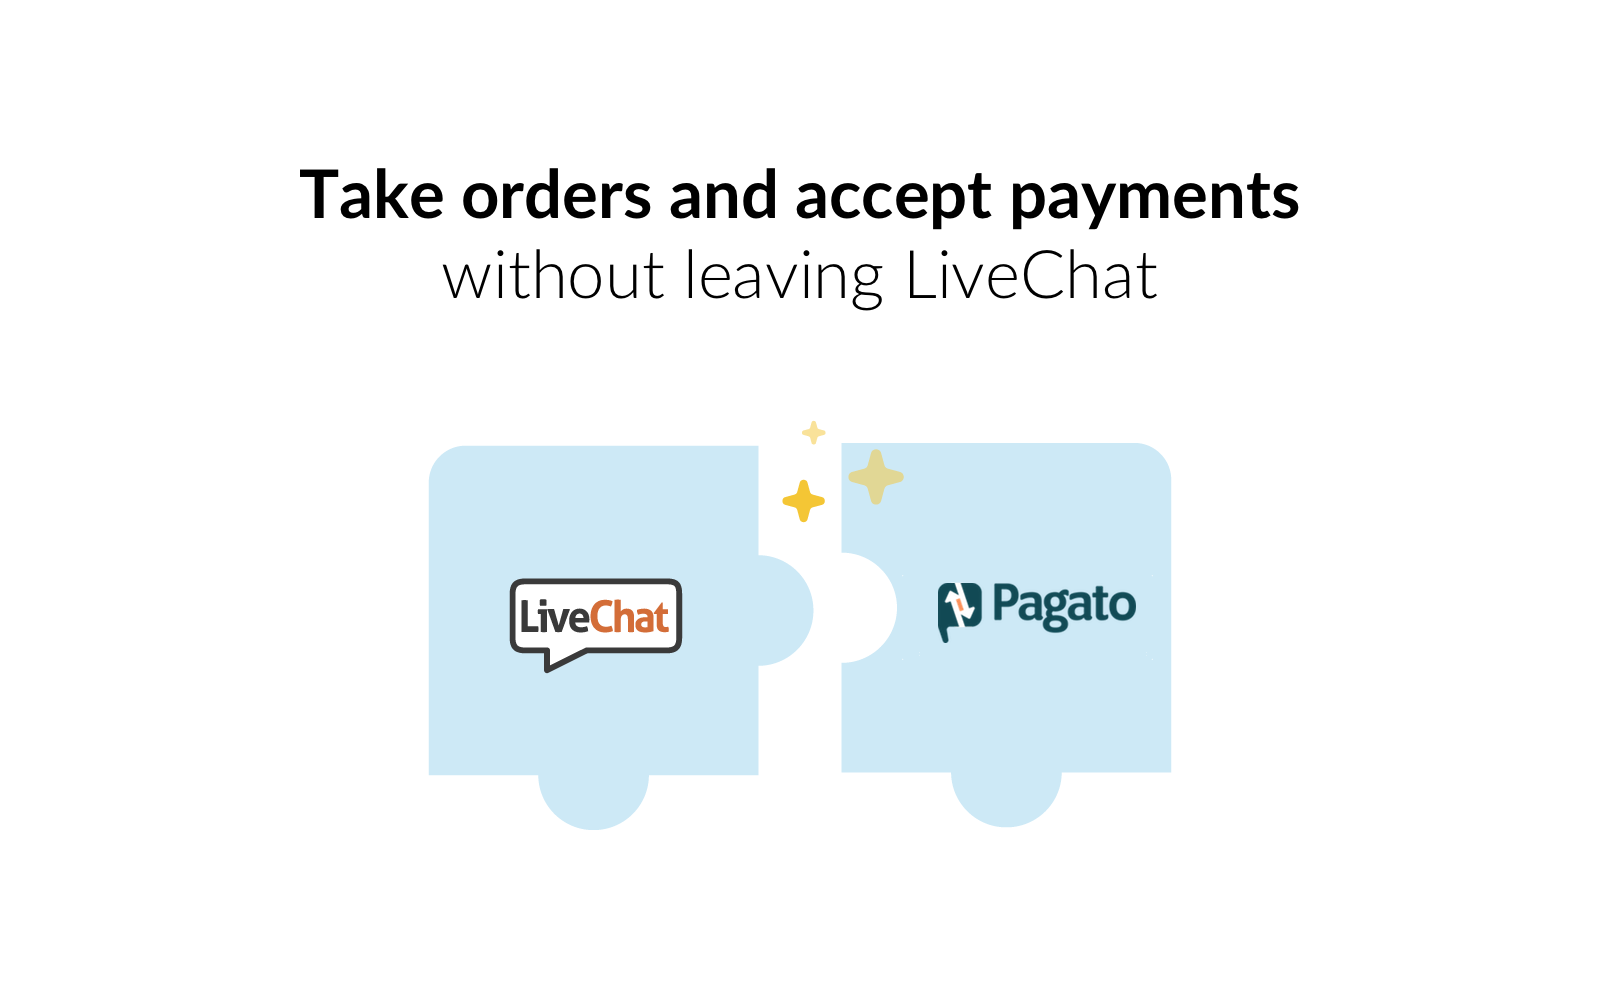 livechat-integrates-with-pagato